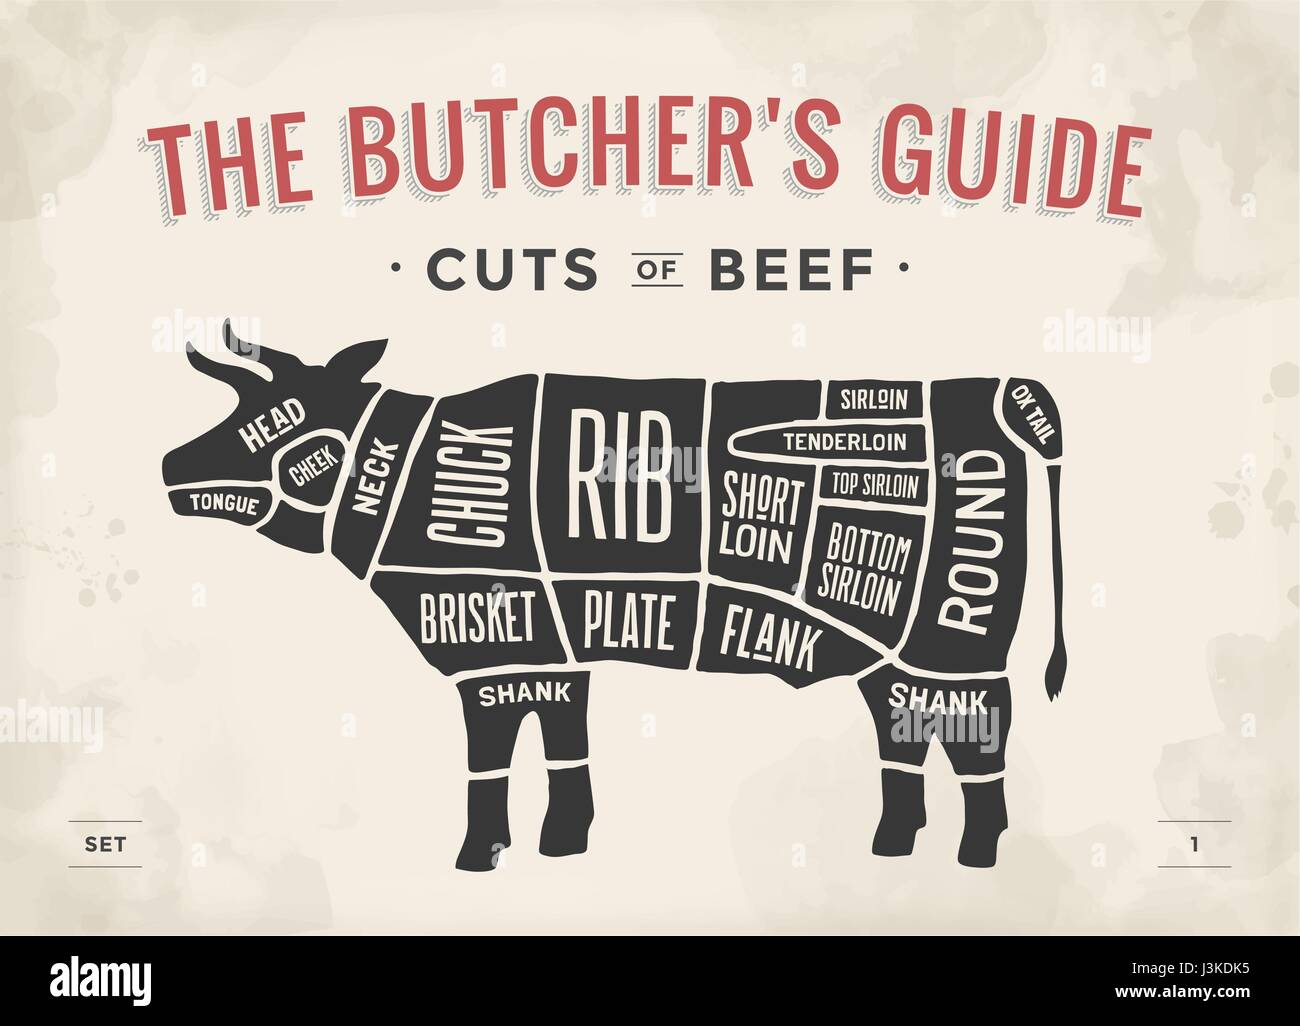 Cut of beef set. Poster Butcher diagram and scheme - Cow. Vintage typographic hand-drawn. Vector illustration. - Stock Image